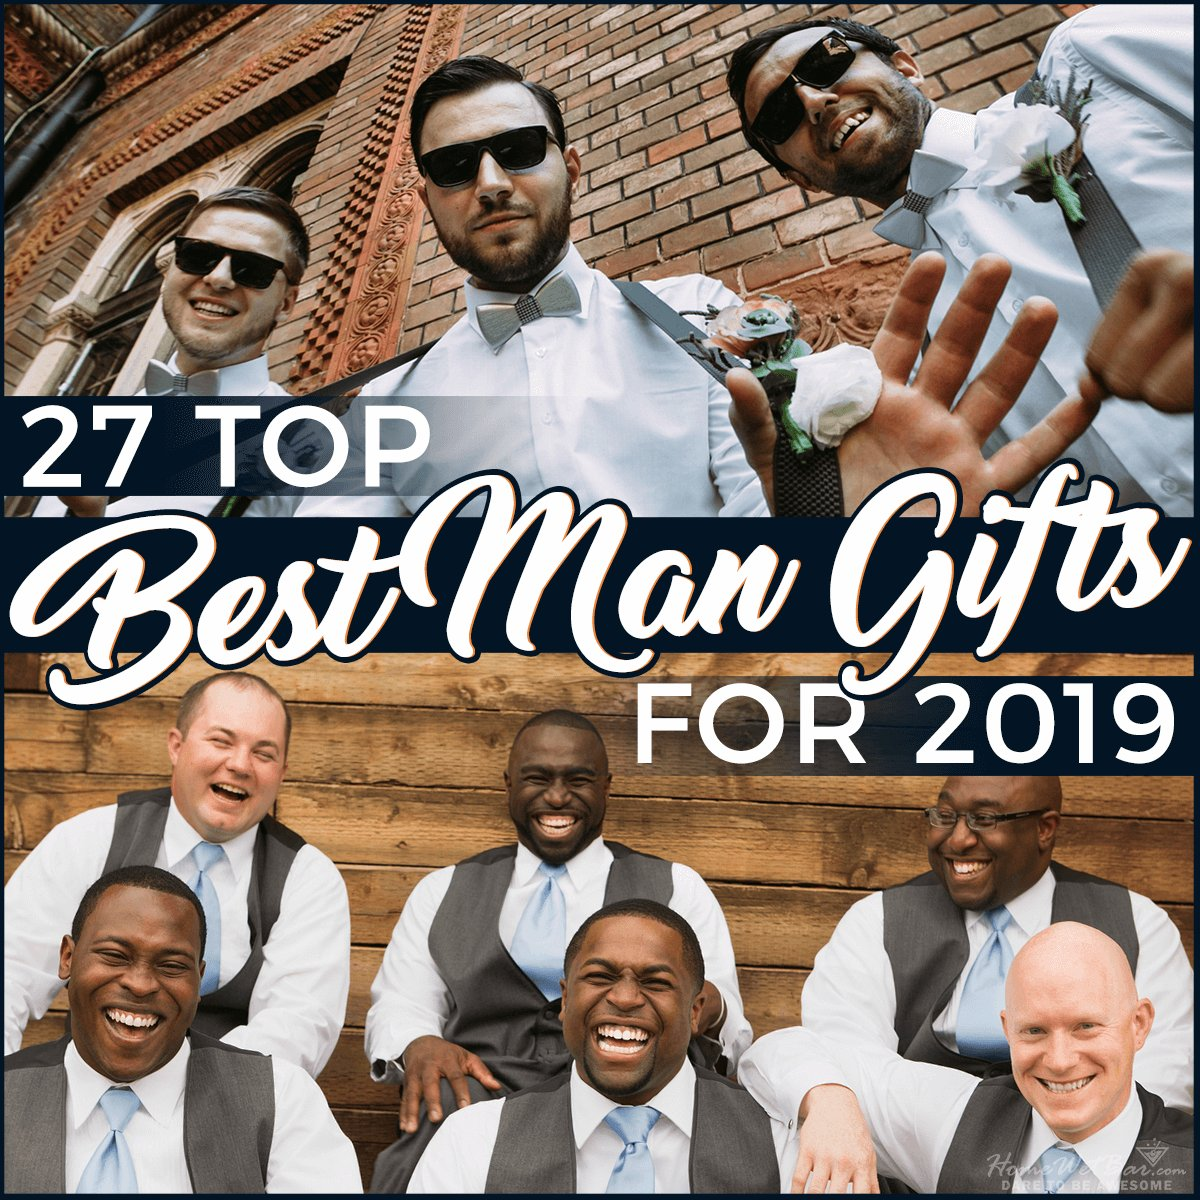 Best Man Gifts 2019 27 Top Best Man Gifts for 2019